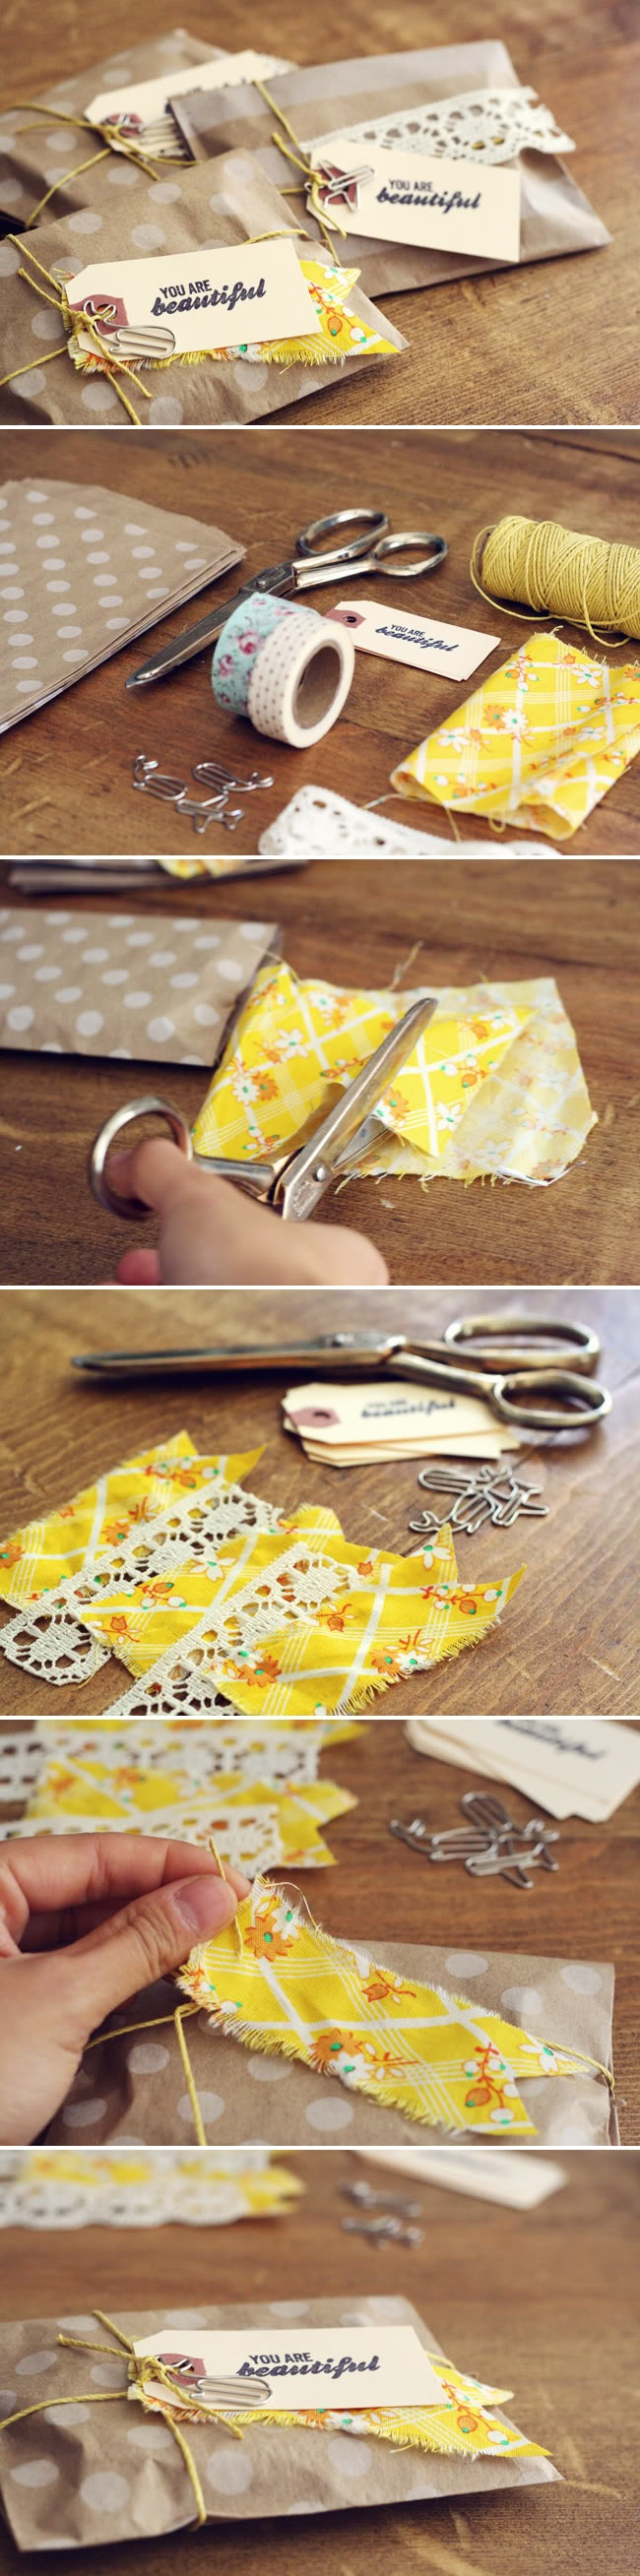 Simple Packaging Idea: use scraps of fabric or lace, twine, paper bags, and some kind of embellishment and there you go--an easy, customizable and cute wrap job